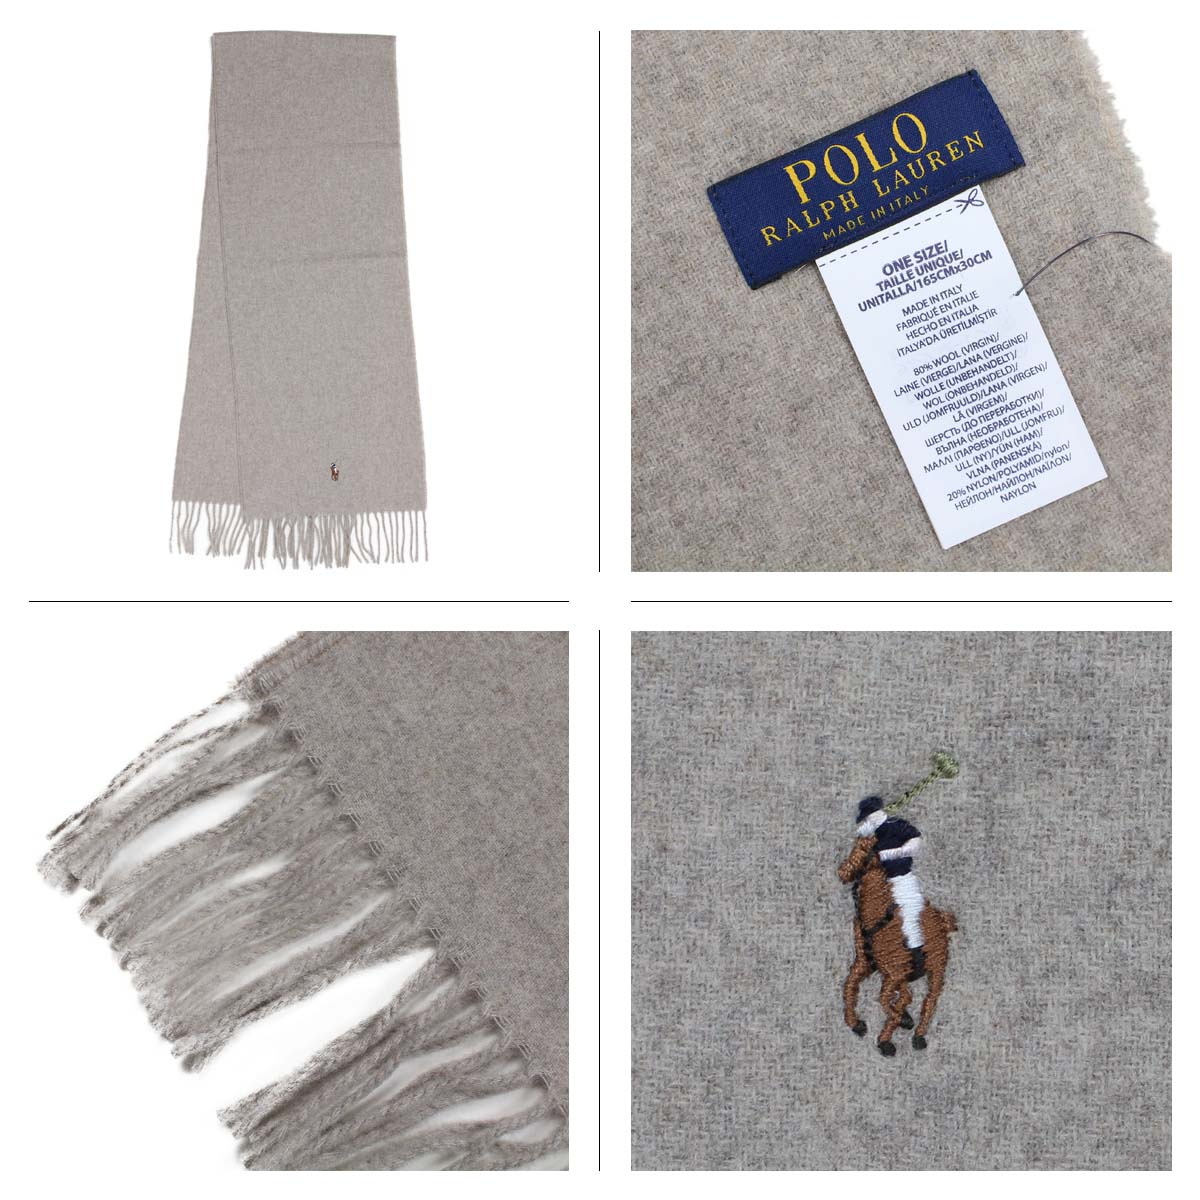 polo ralph lauren classic wool blend muffler polo ralph lauren scarf men gap dis wool orl0158 [10 17 shinnyu load] [1810]  wolle blends c 2_15 #12